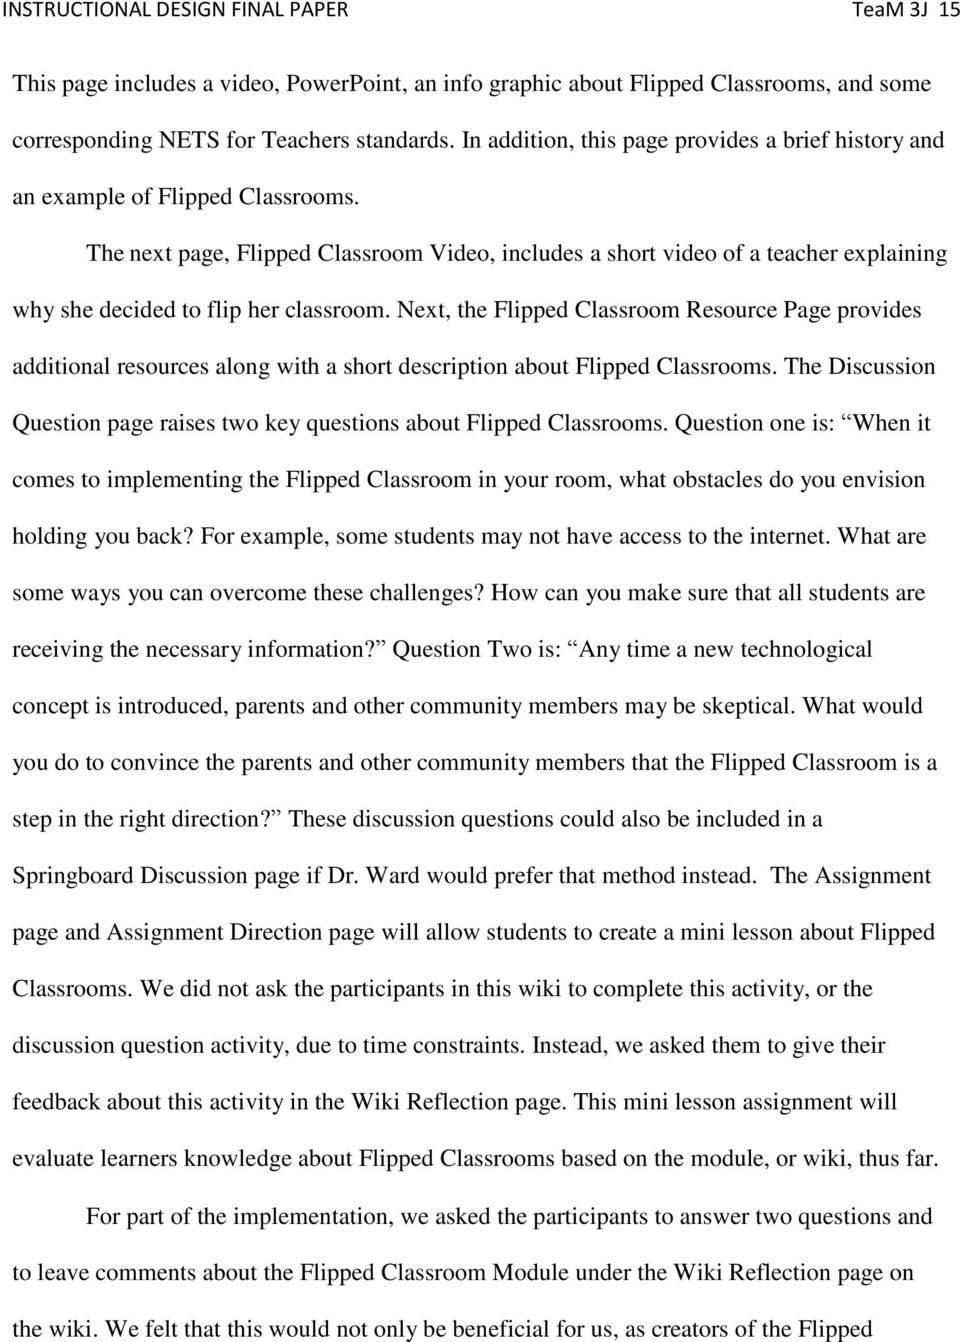 The next page, Flipped Classroom Video, includes a short video of a teacher explaining why she decided to flip her classroom.